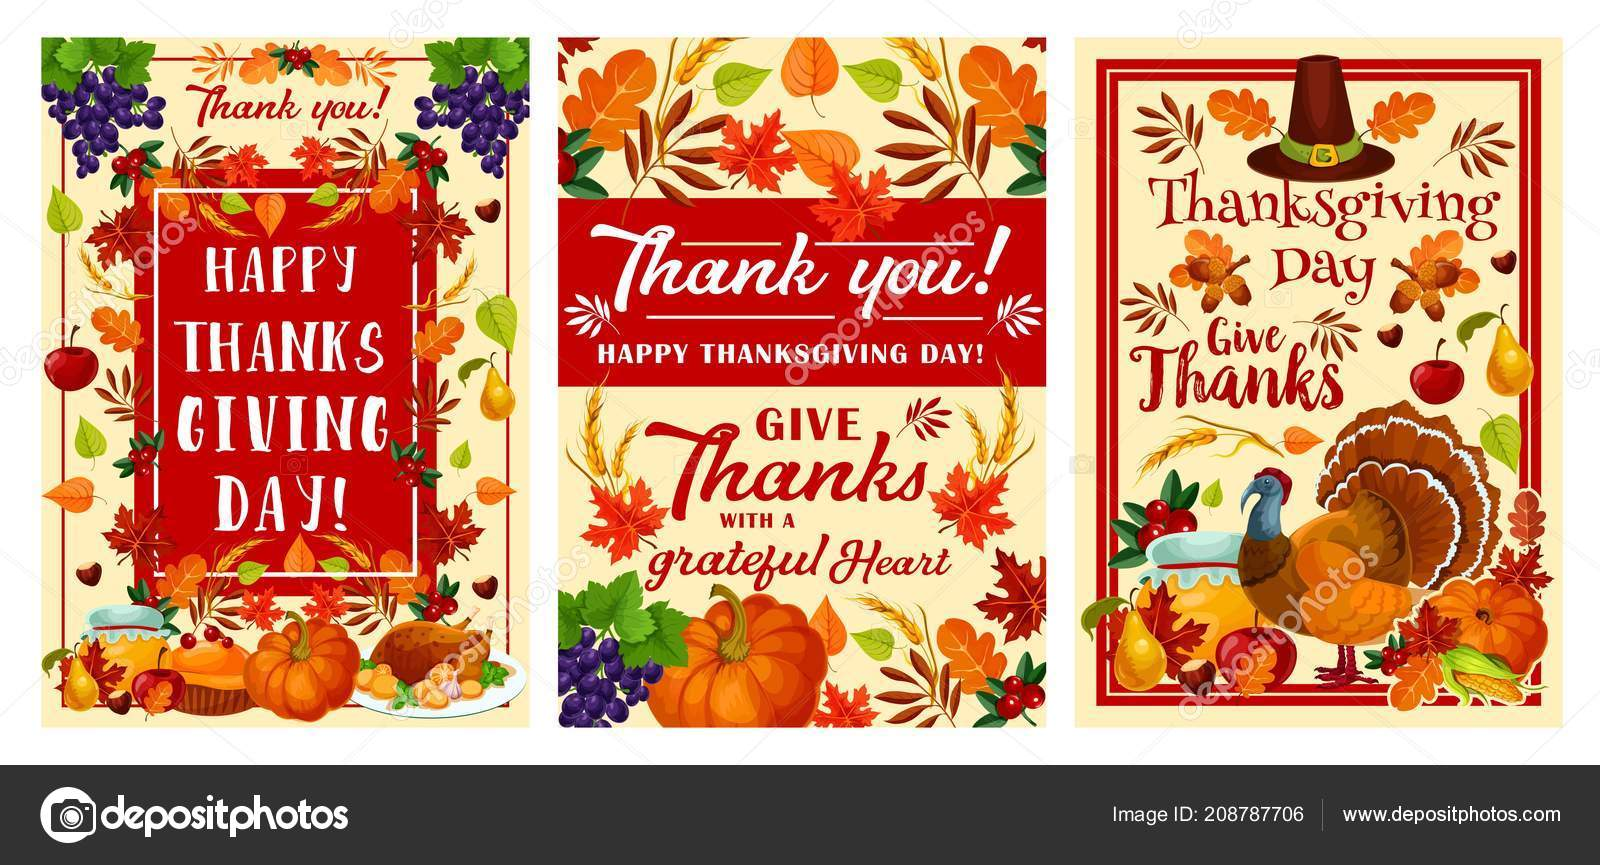 Thanksgiving day holiday greeting banner design stock vector thanksgiving day holiday greeting banner design stock vector m4hsunfo